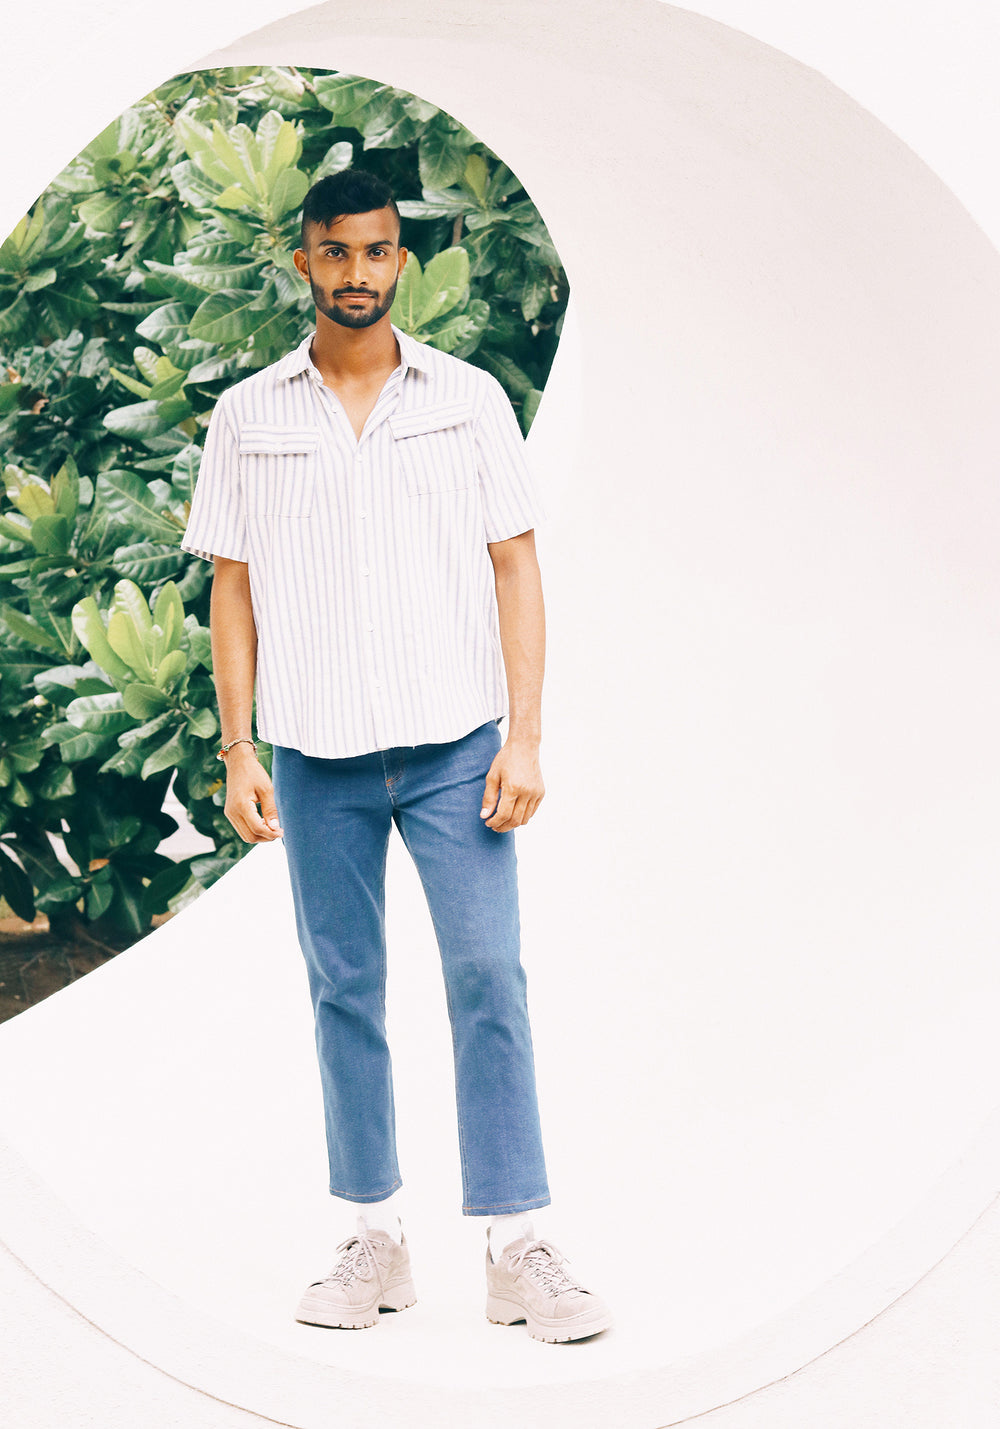 Relaxed fit Short Sleeved Striped Shirt with slanted chest pockets